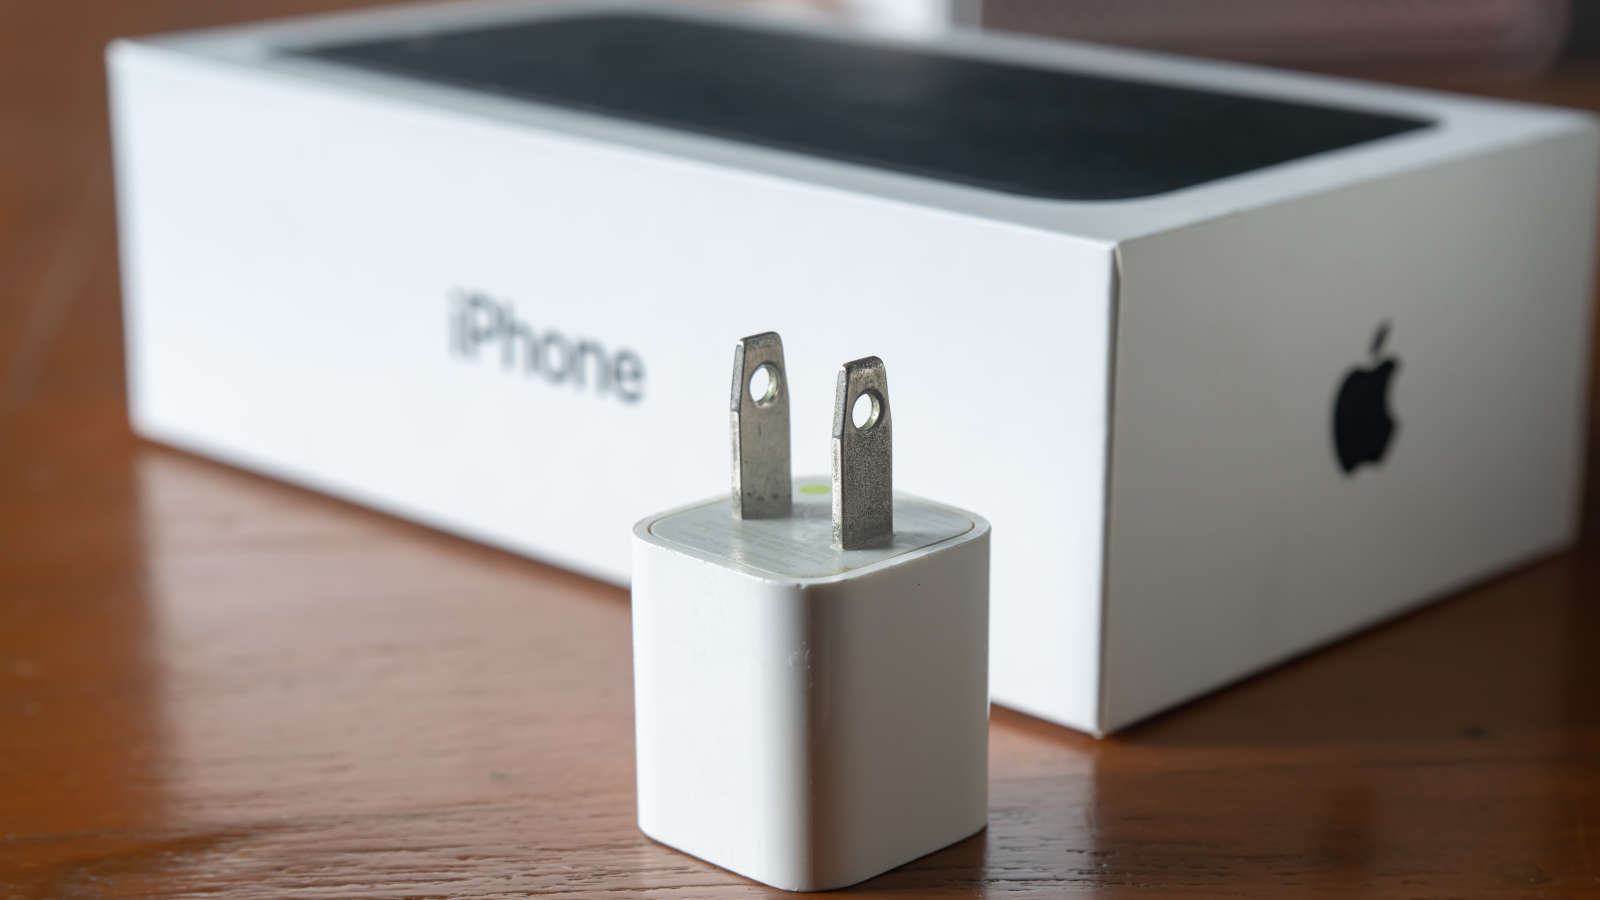 How to Prep Your iPhone for Apple's Trade-In Program